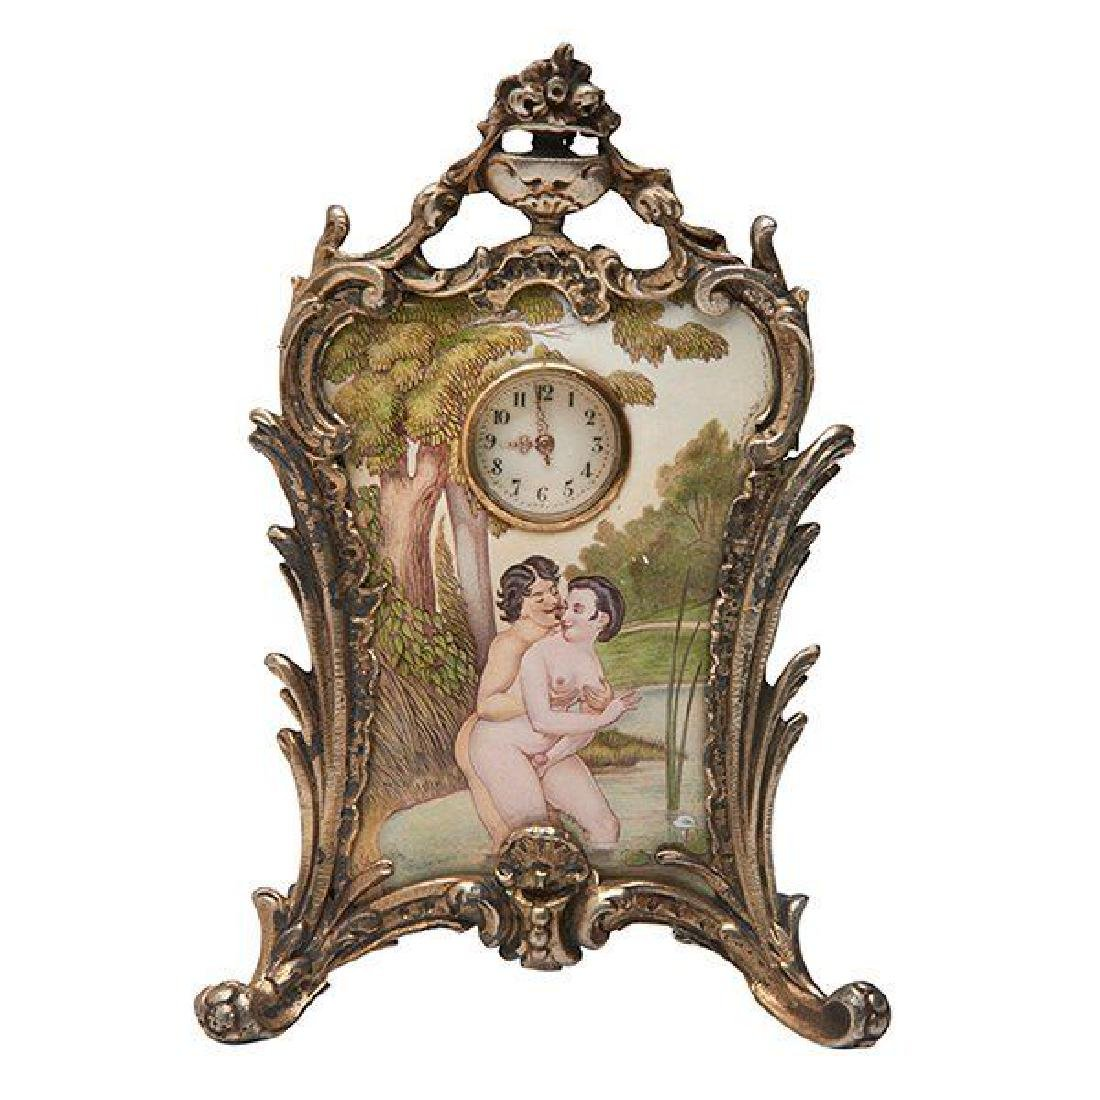 Erotic Al Fresco Bathers Easel Clock